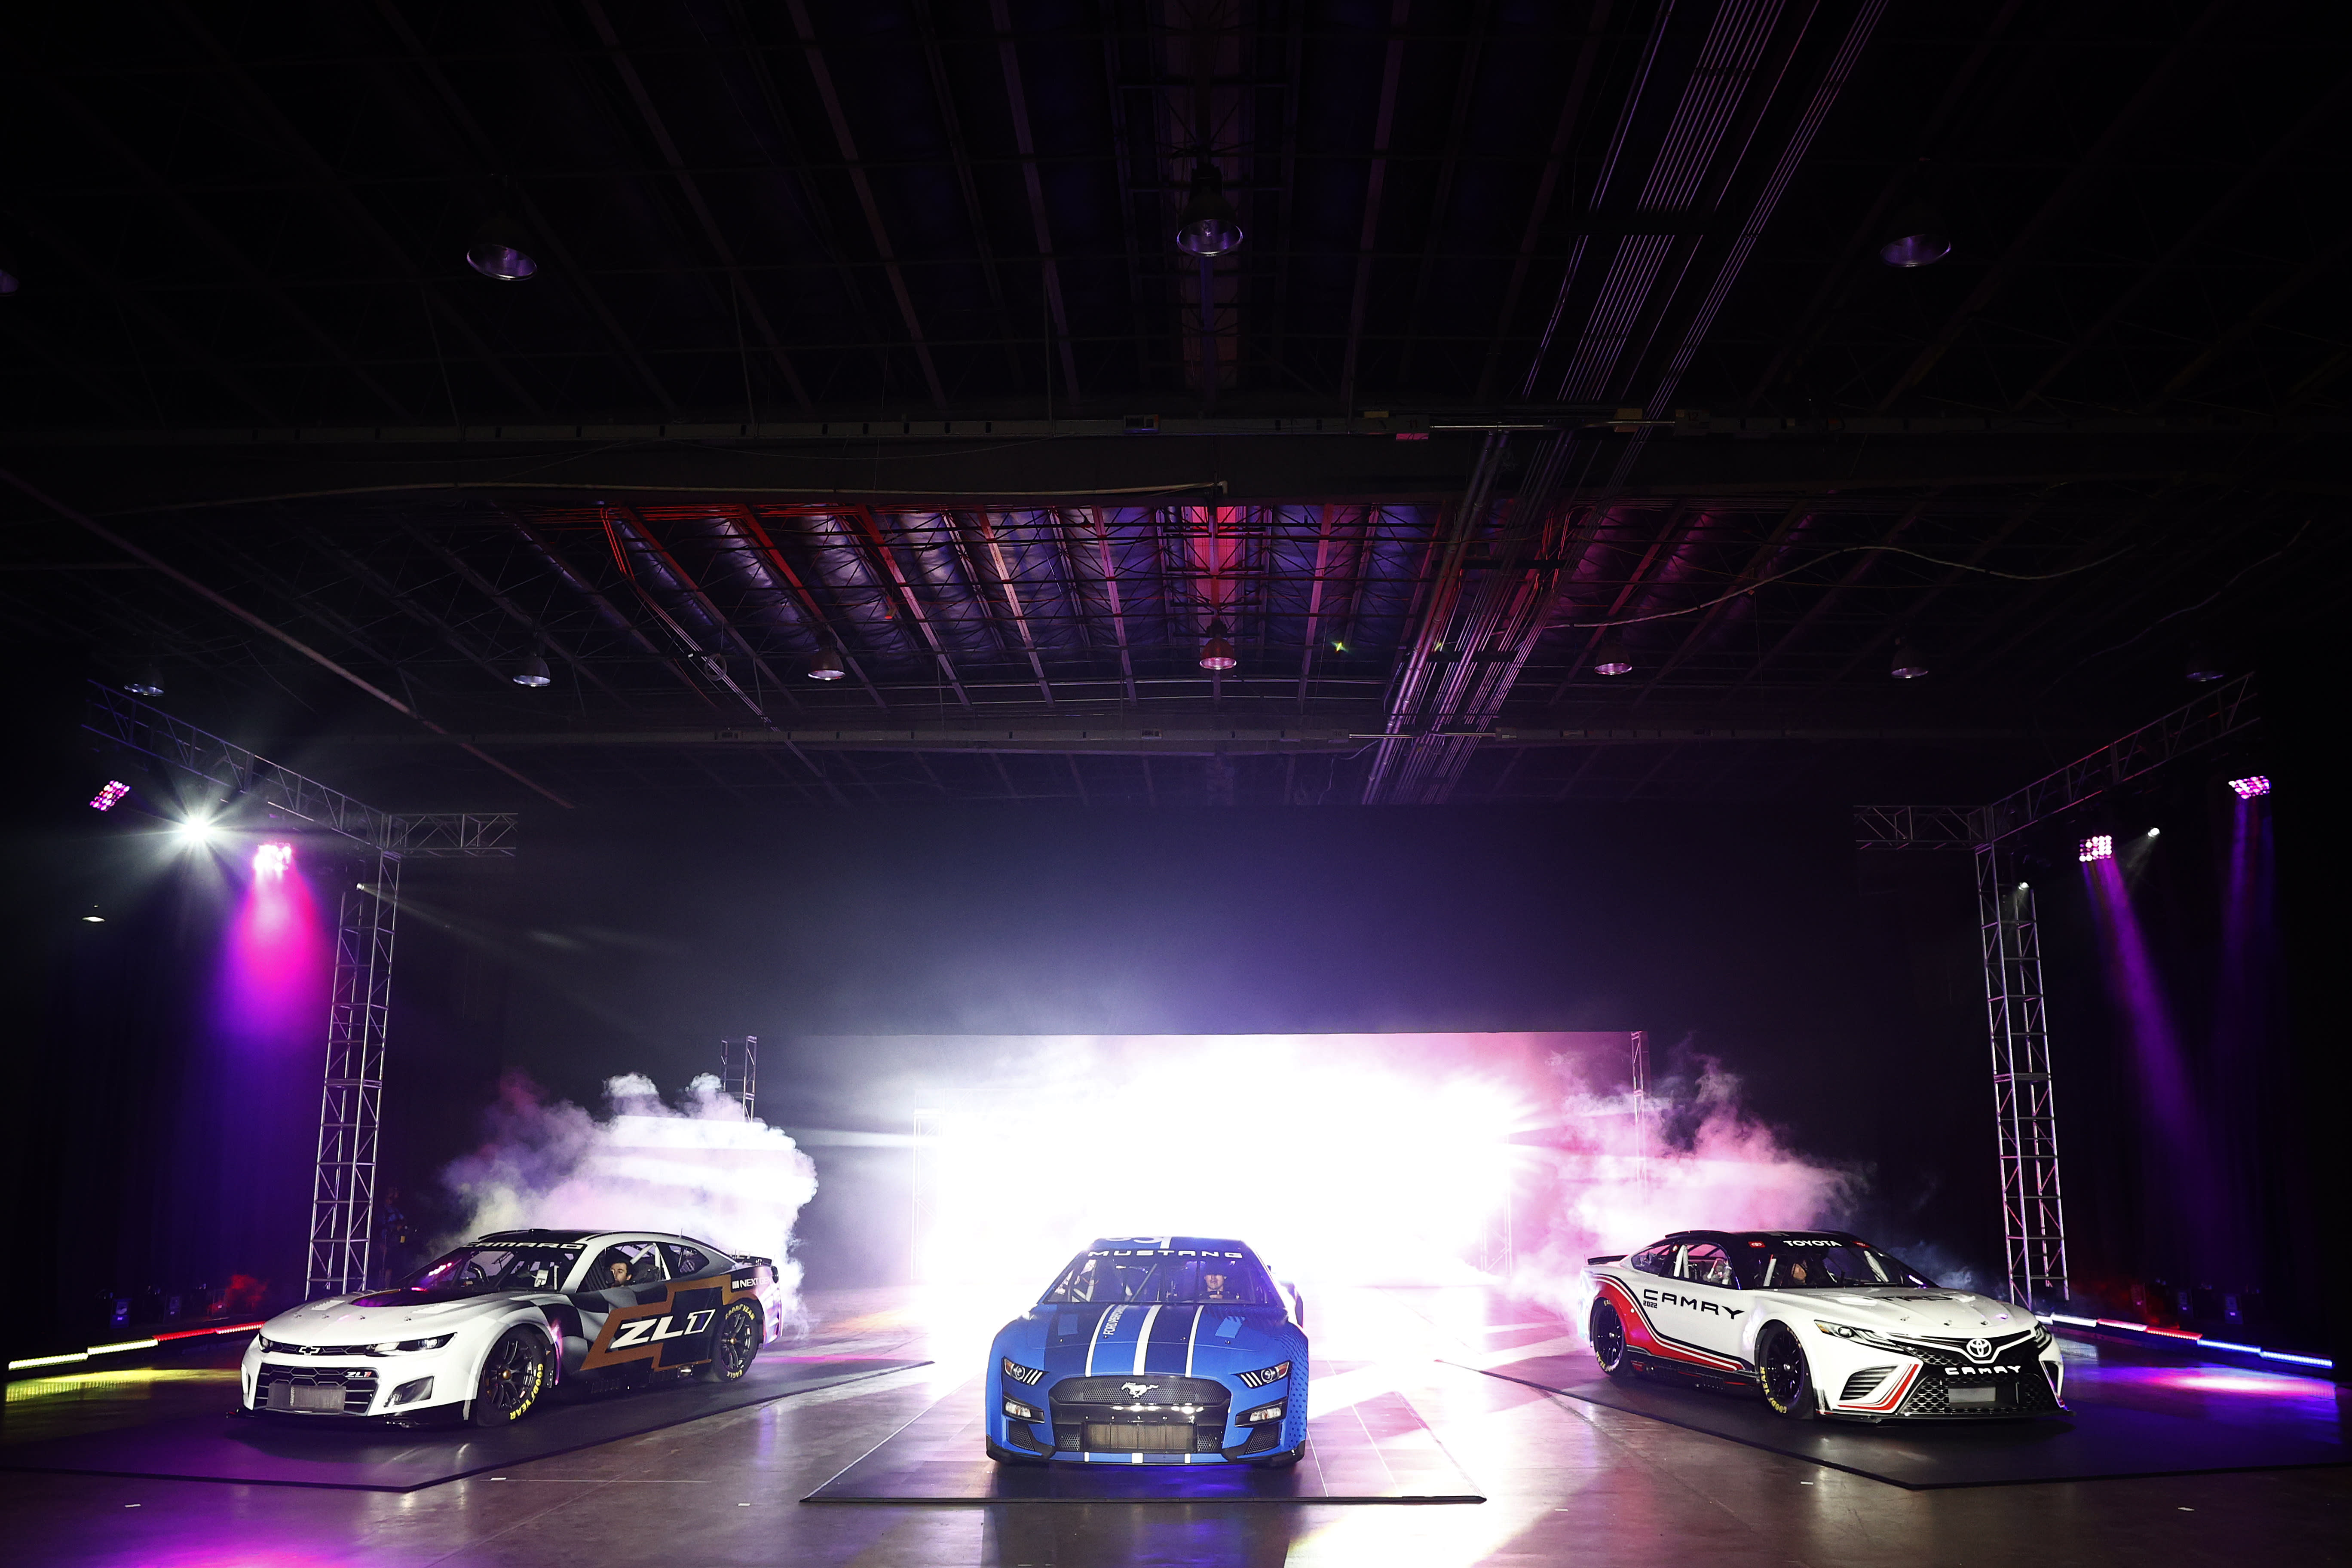 CHARLOTTE, NORTH CAROLINA - MAY 05: NASCAR unveils the seventh generation of the NASCAR Cup Series Chevrolet, Ford and Toyota cars during the NASCAR Next Gen Car Announcement on May 05, 2021 in Charlotte, North Carolina. (Photo by Jared C. Tilton/Getty Images)